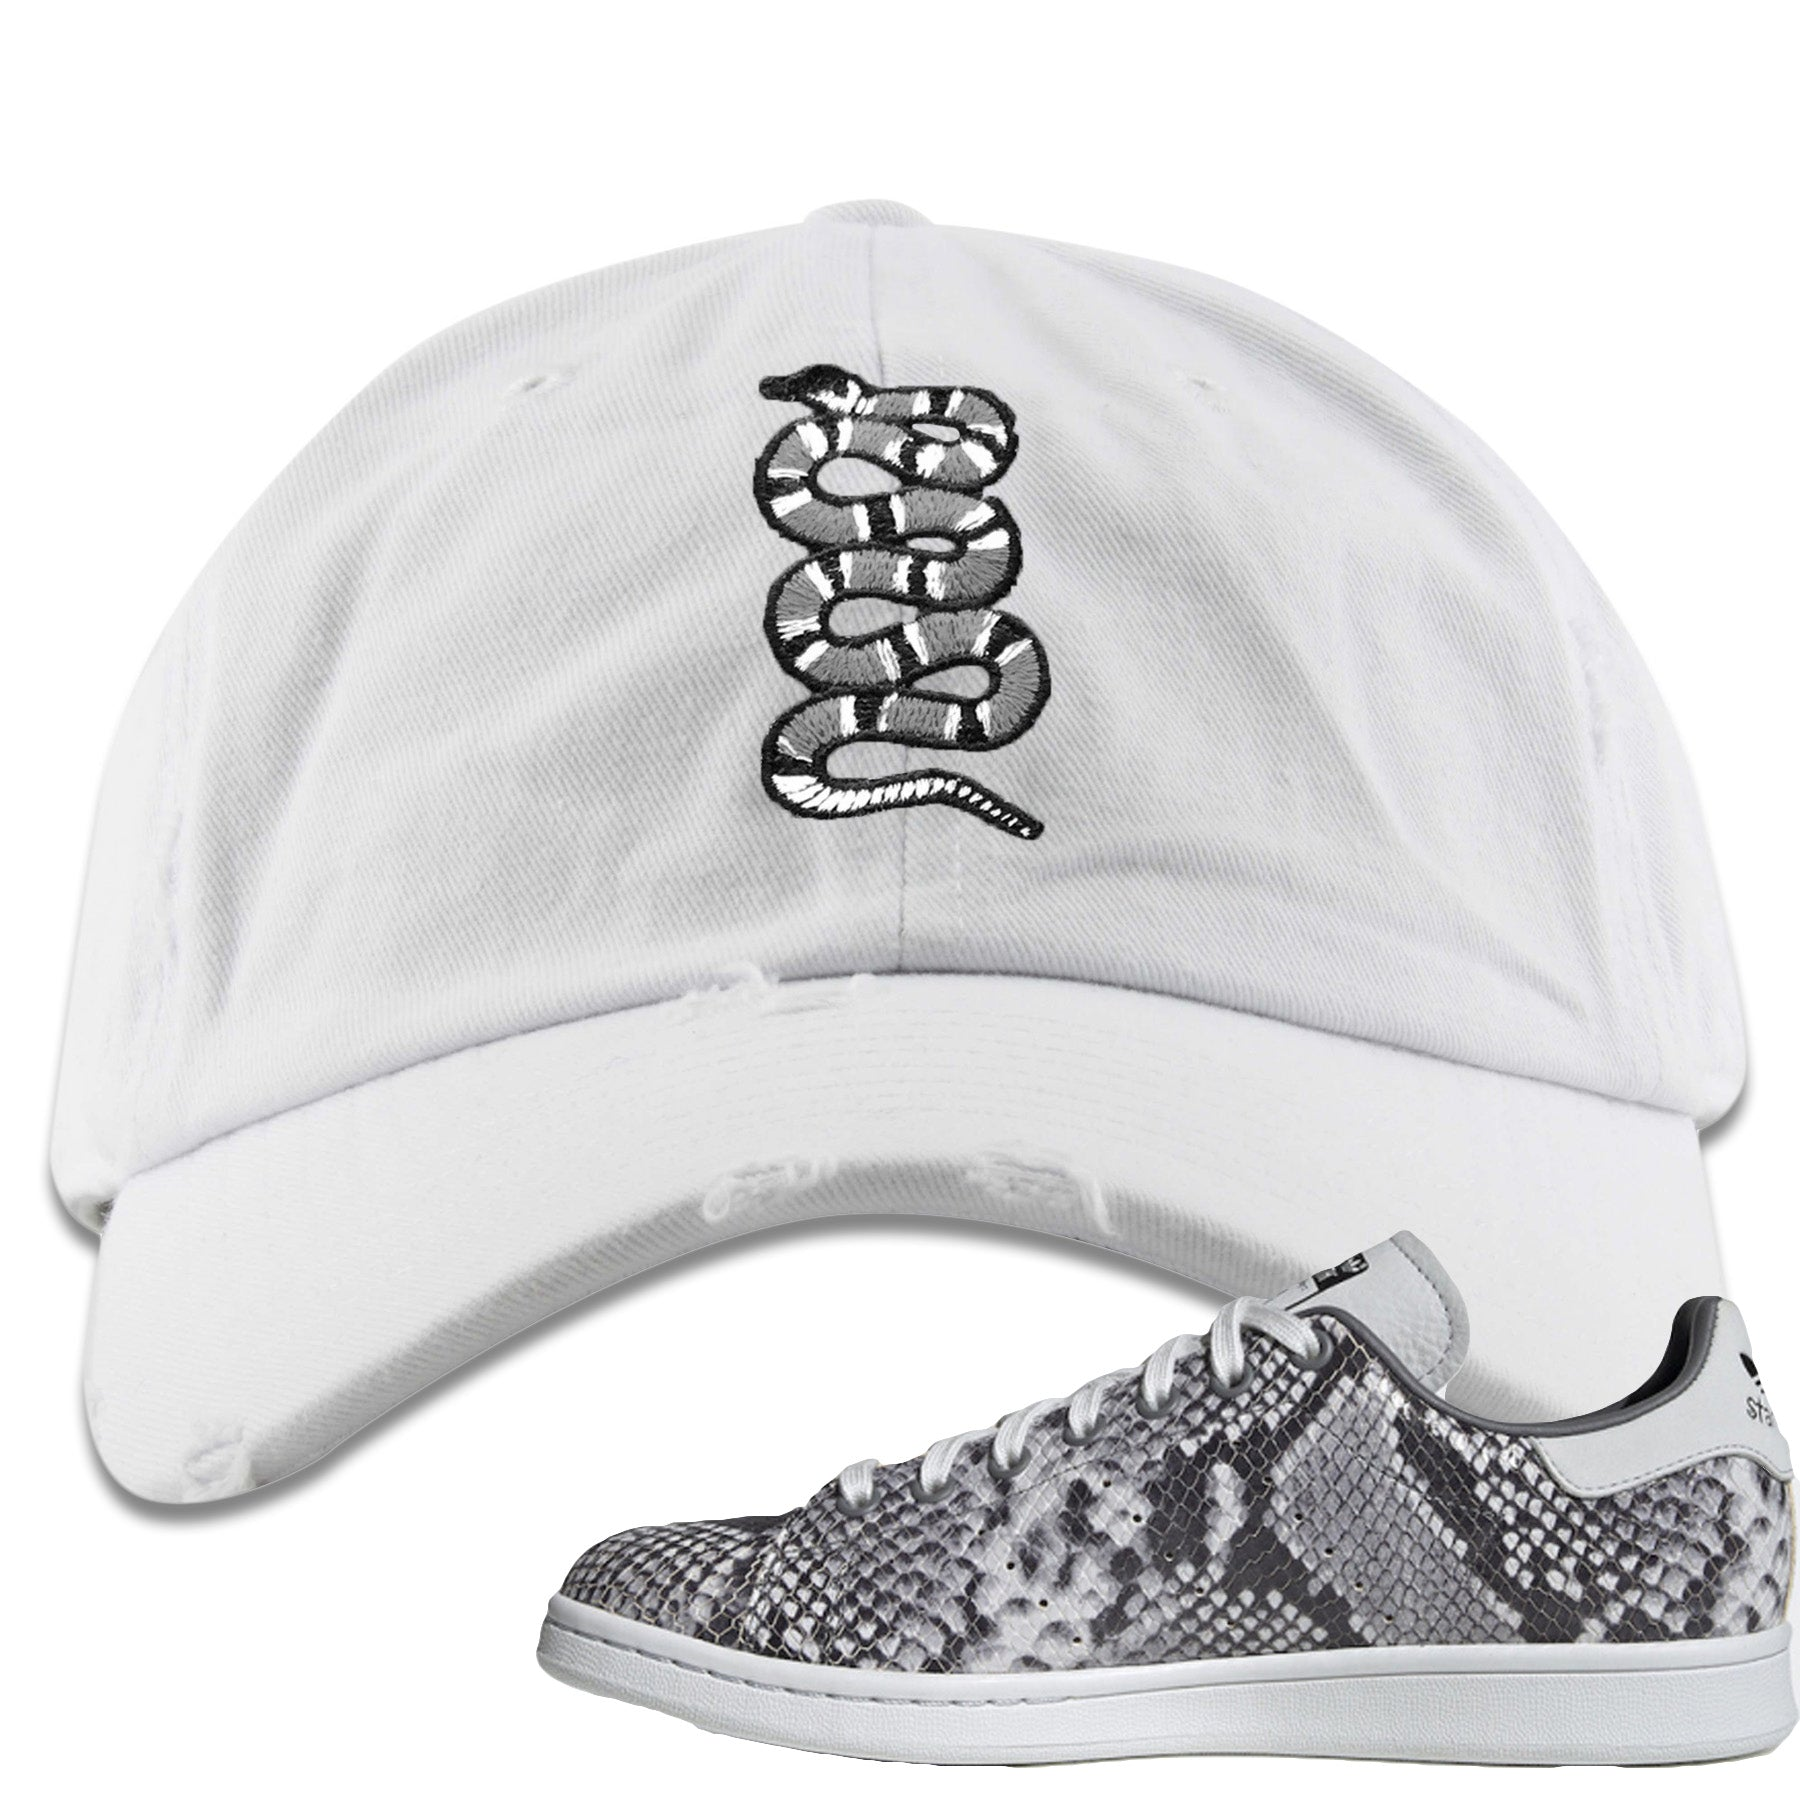 low priced deed7 ed92d Adidas Stan Smith Grey Snakeskin Sneaker Match Coiled Snake White  Distressed Dad Hat